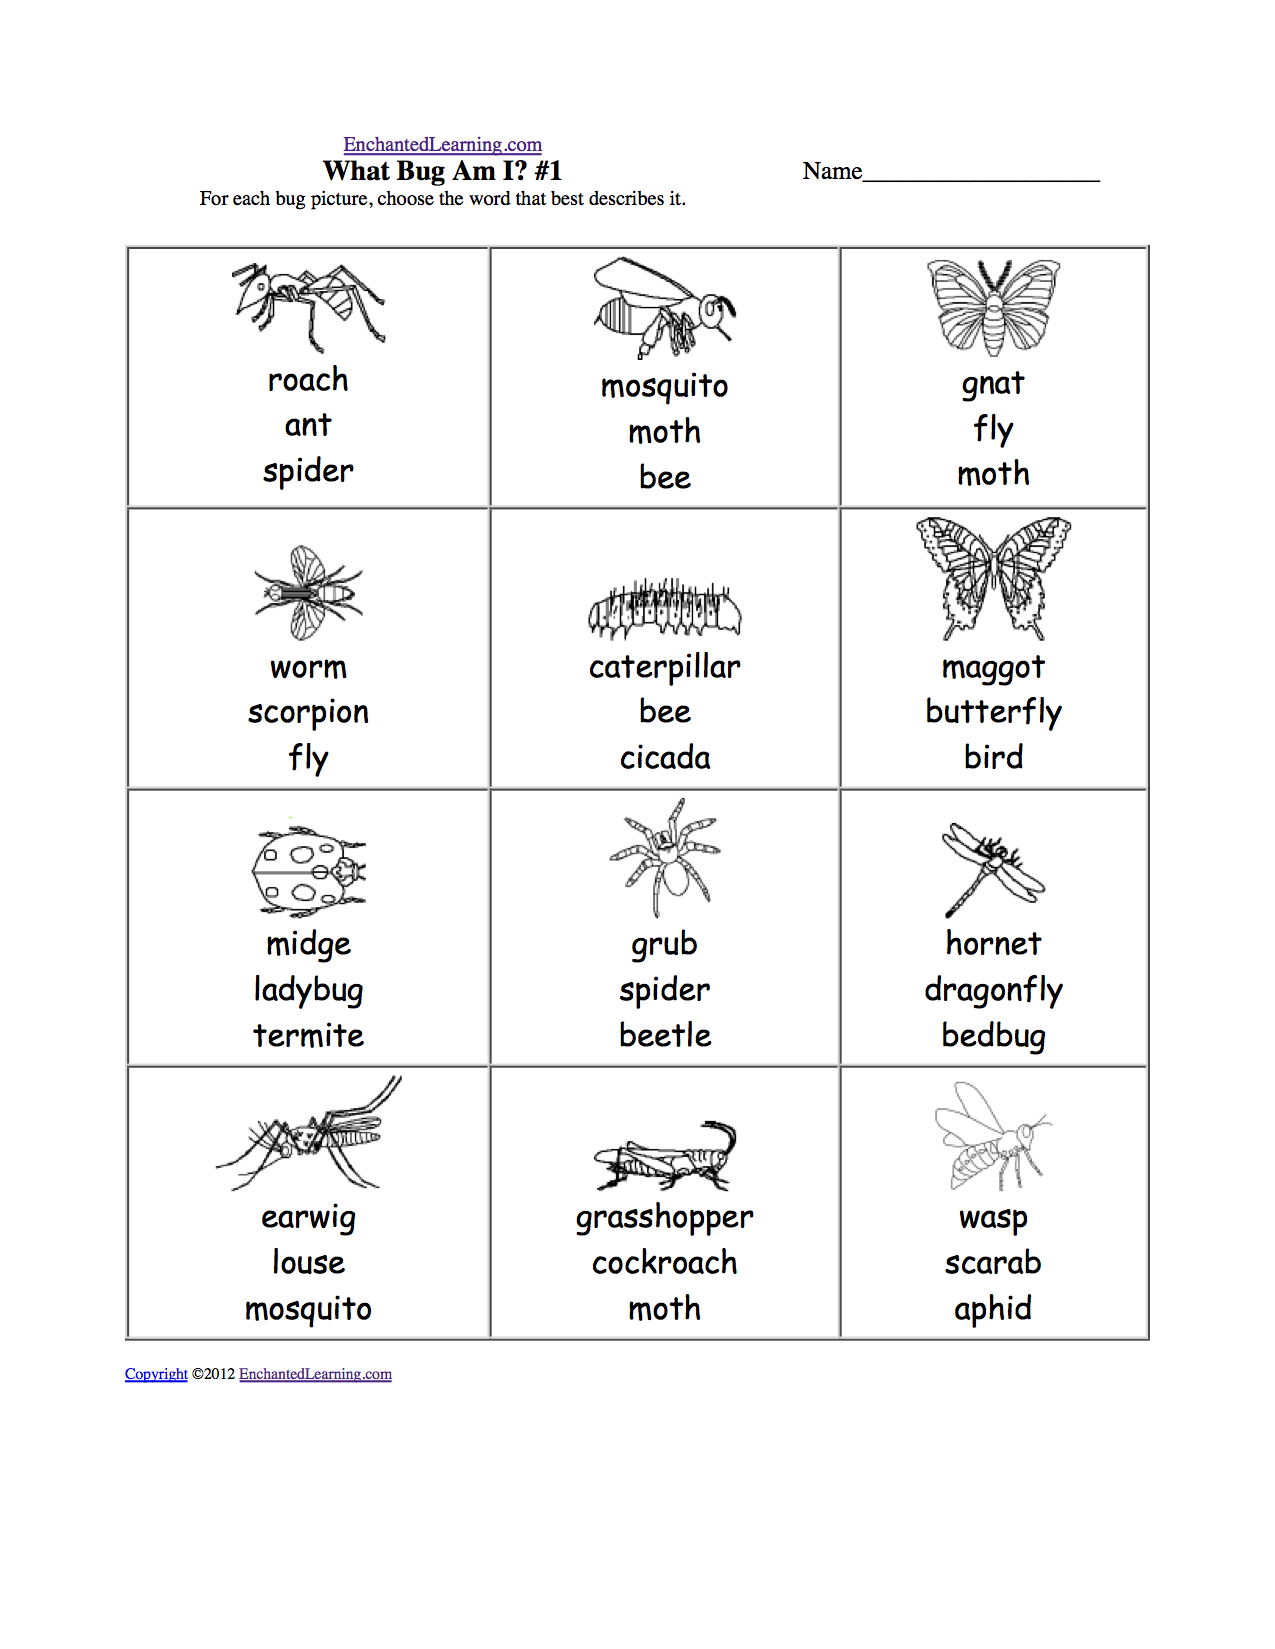 Aldiablosus  Unique What Am I Worksheet Printouts  Enchantedlearningcom With Lovable Phonics Phase  Worksheets Besides Grade  Math Worksheets Printable Furthermore Congruent Lines Worksheet With Cool Worksheets On Adverbs For Grade  Also Free Cloze Worksheets In Addition Linear Worksheets And Adding   Digit Numbers Worksheet As Well As Adding  Worksheet Additionally Fun Halloween Math Worksheets From Enchantedlearningcom With Aldiablosus  Lovable What Am I Worksheet Printouts  Enchantedlearningcom With Cool Phonics Phase  Worksheets Besides Grade  Math Worksheets Printable Furthermore Congruent Lines Worksheet And Unique Worksheets On Adverbs For Grade  Also Free Cloze Worksheets In Addition Linear Worksheets From Enchantedlearningcom